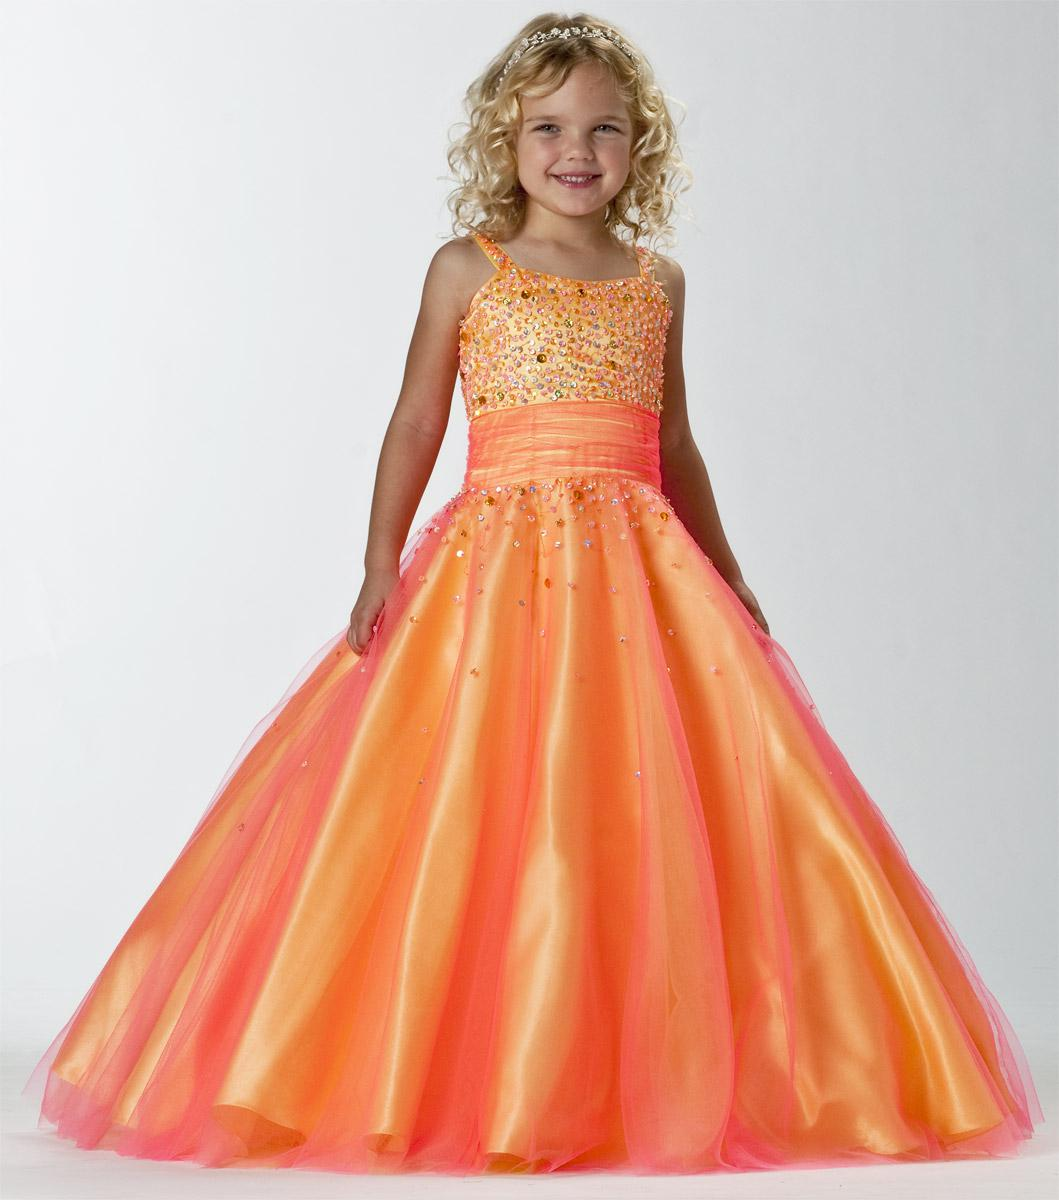 Christmas Lovely Orange Satin Flower Girl S Dress Girl S